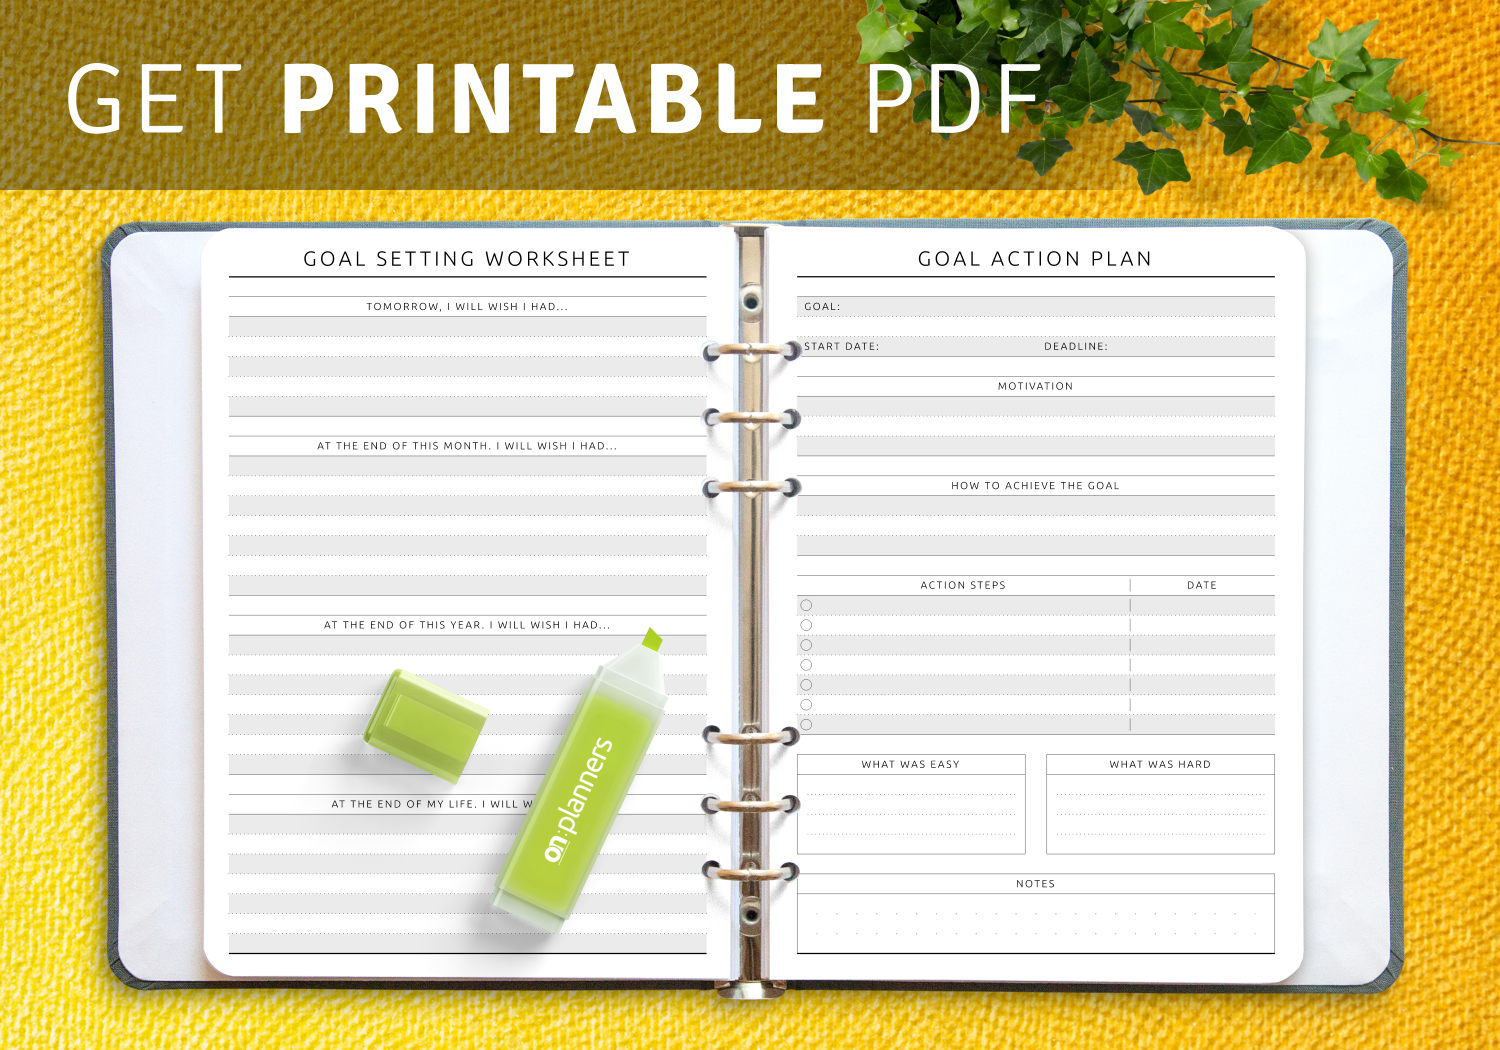 Printable Goal Setting Worksheets